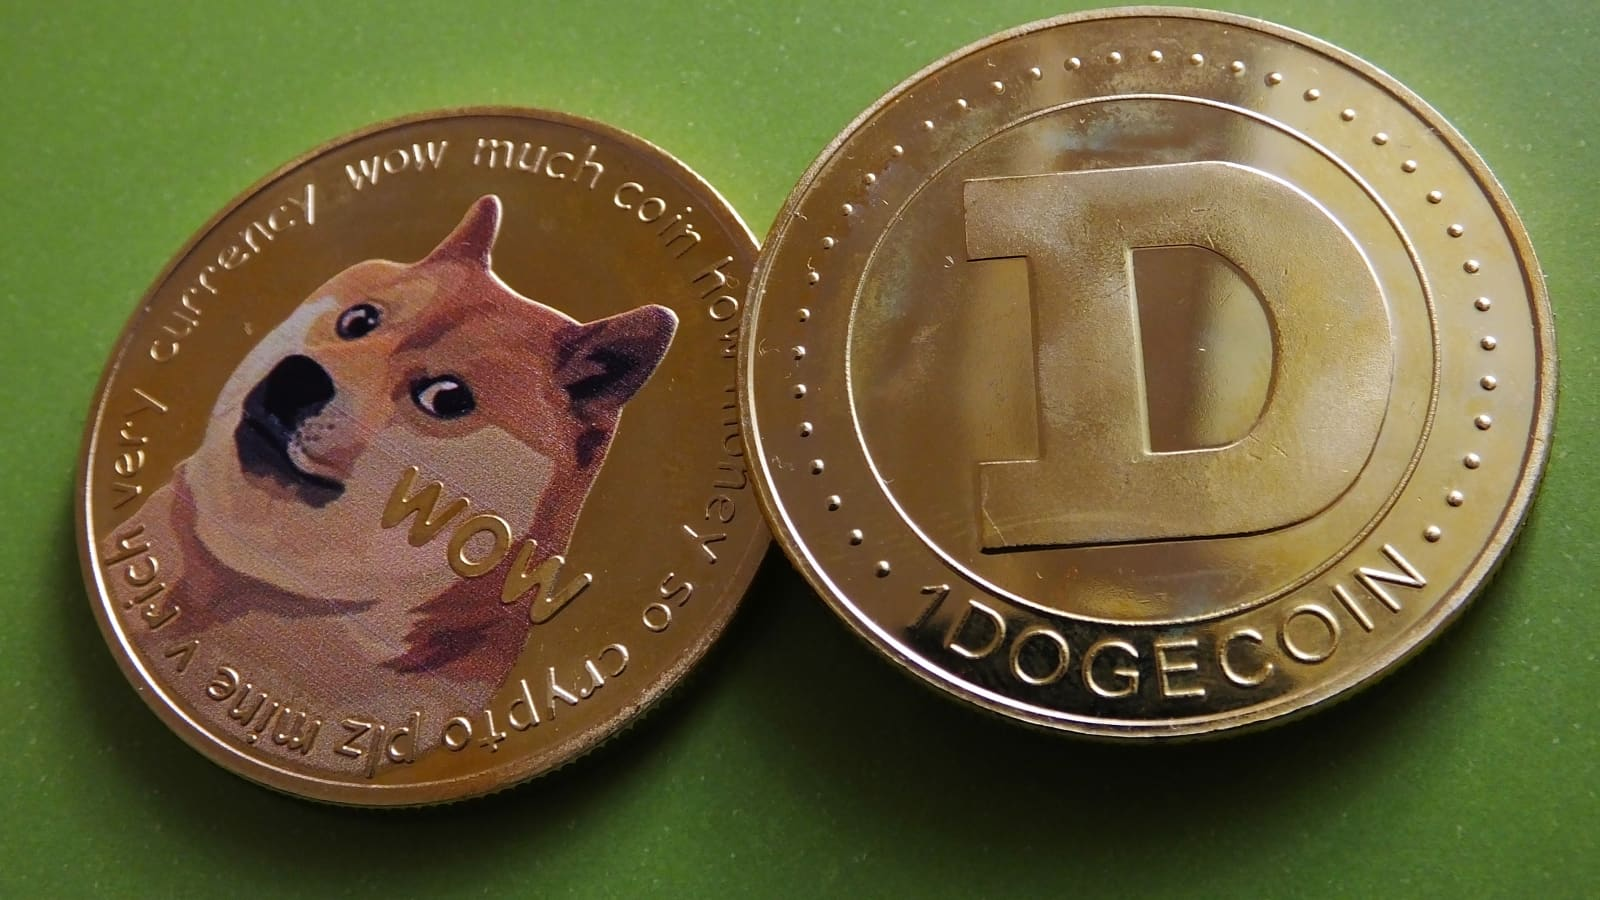 Dogecoin (DOGE) joins the Coinbase Commerce portal